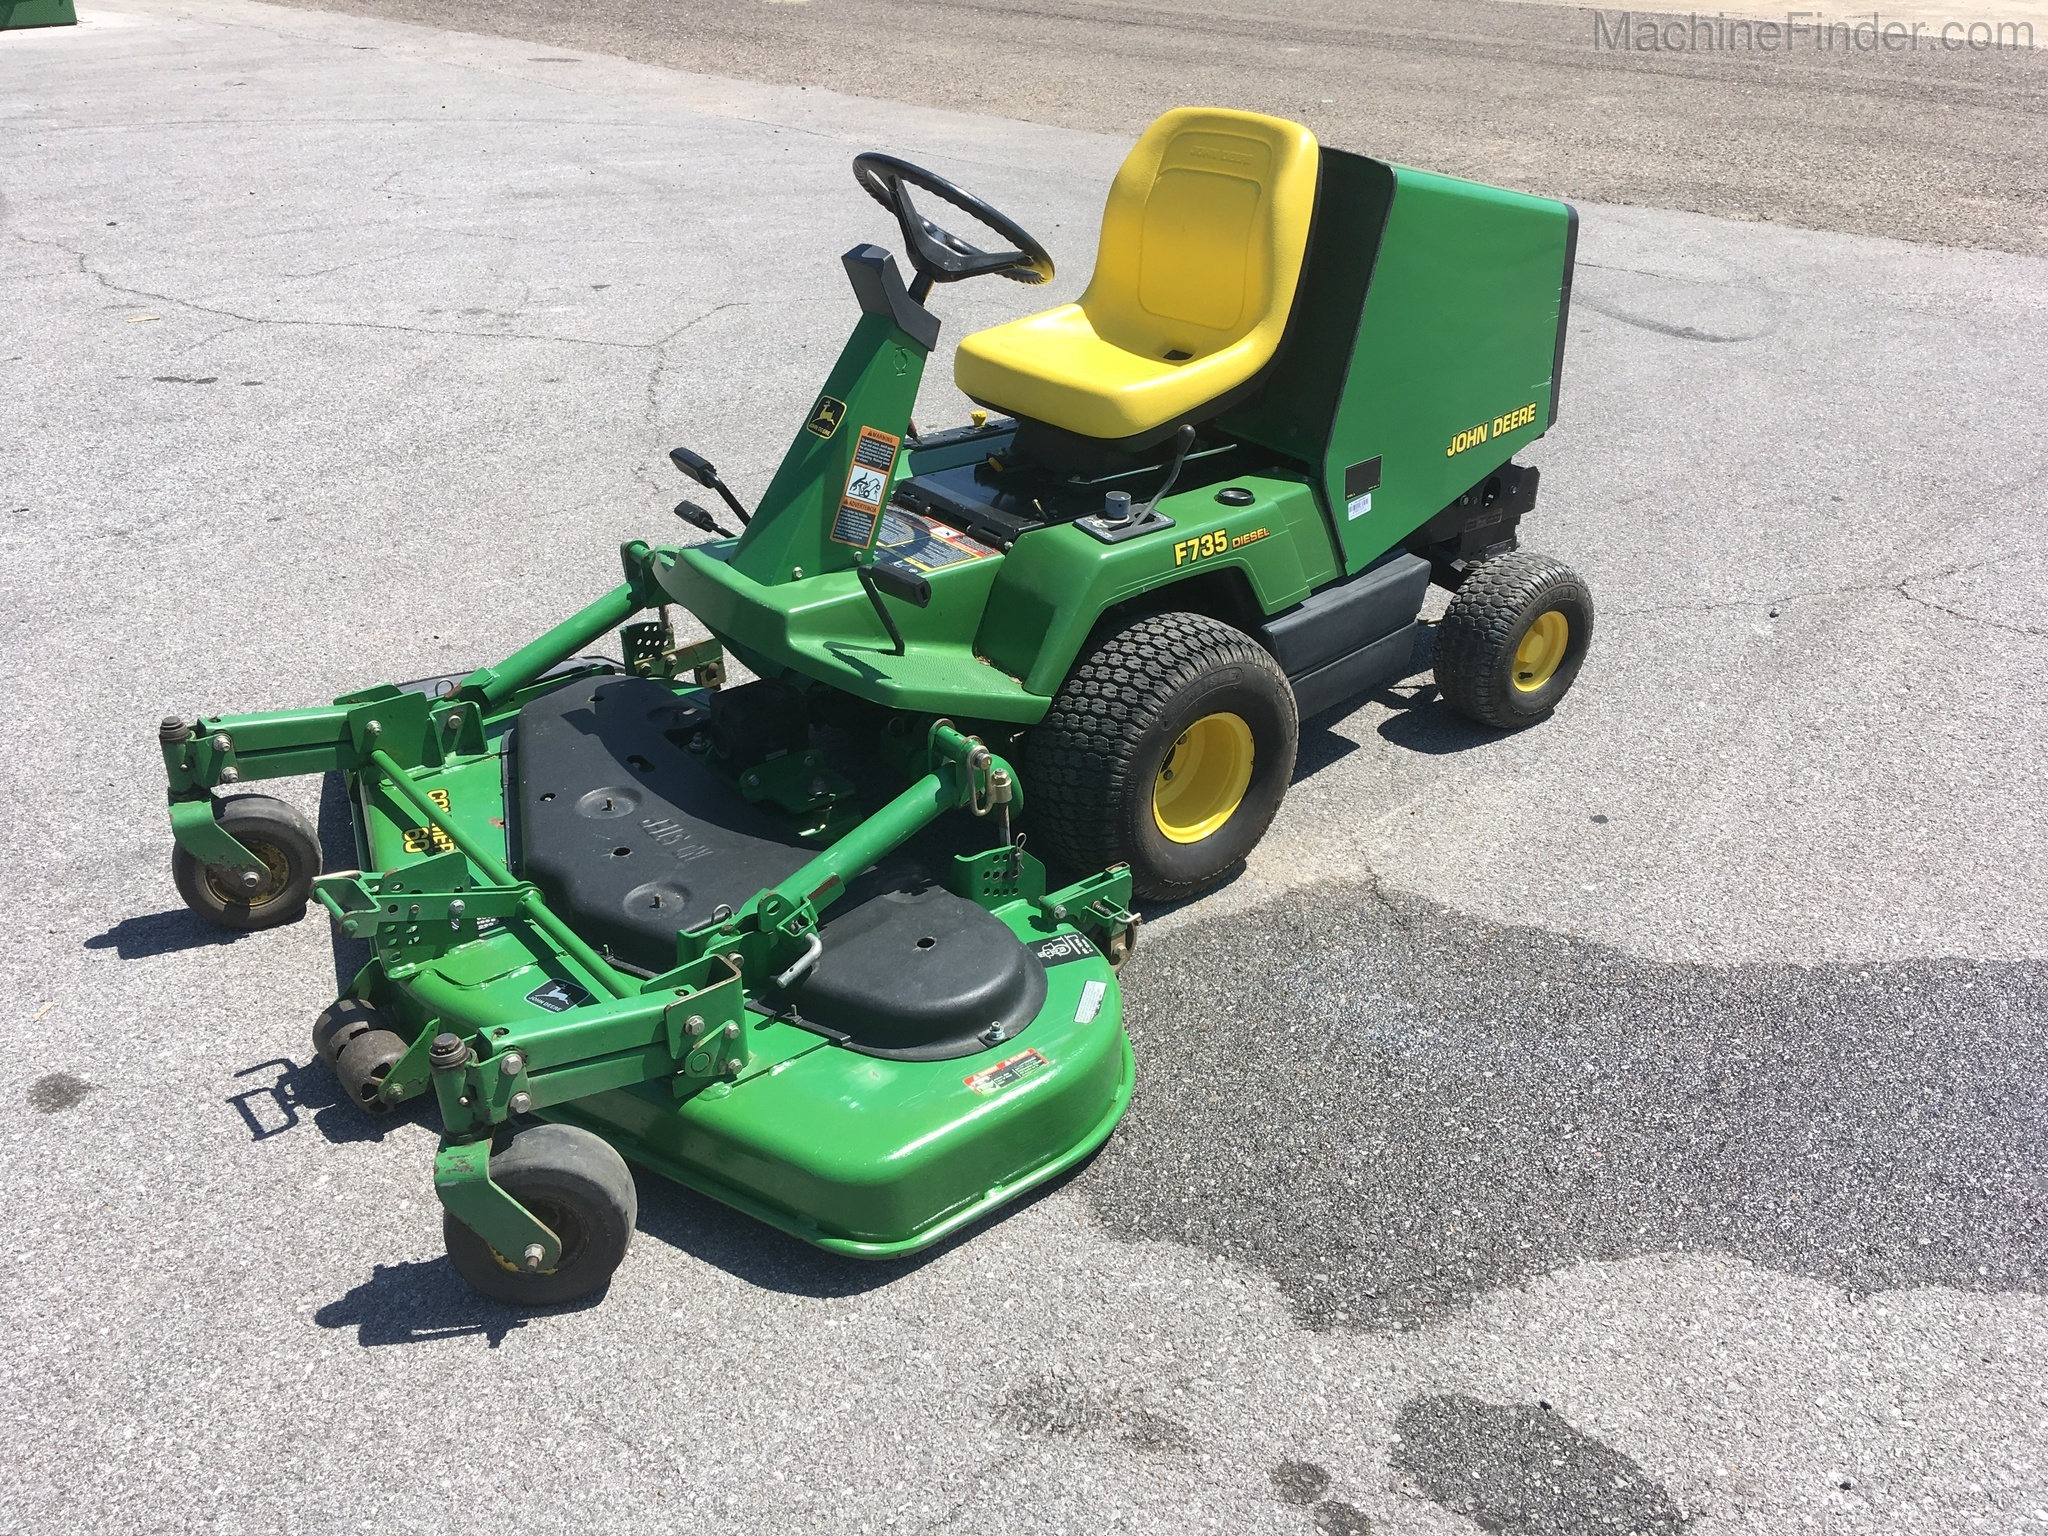 John Deere F735 Front Mower Service Manual Download John border=